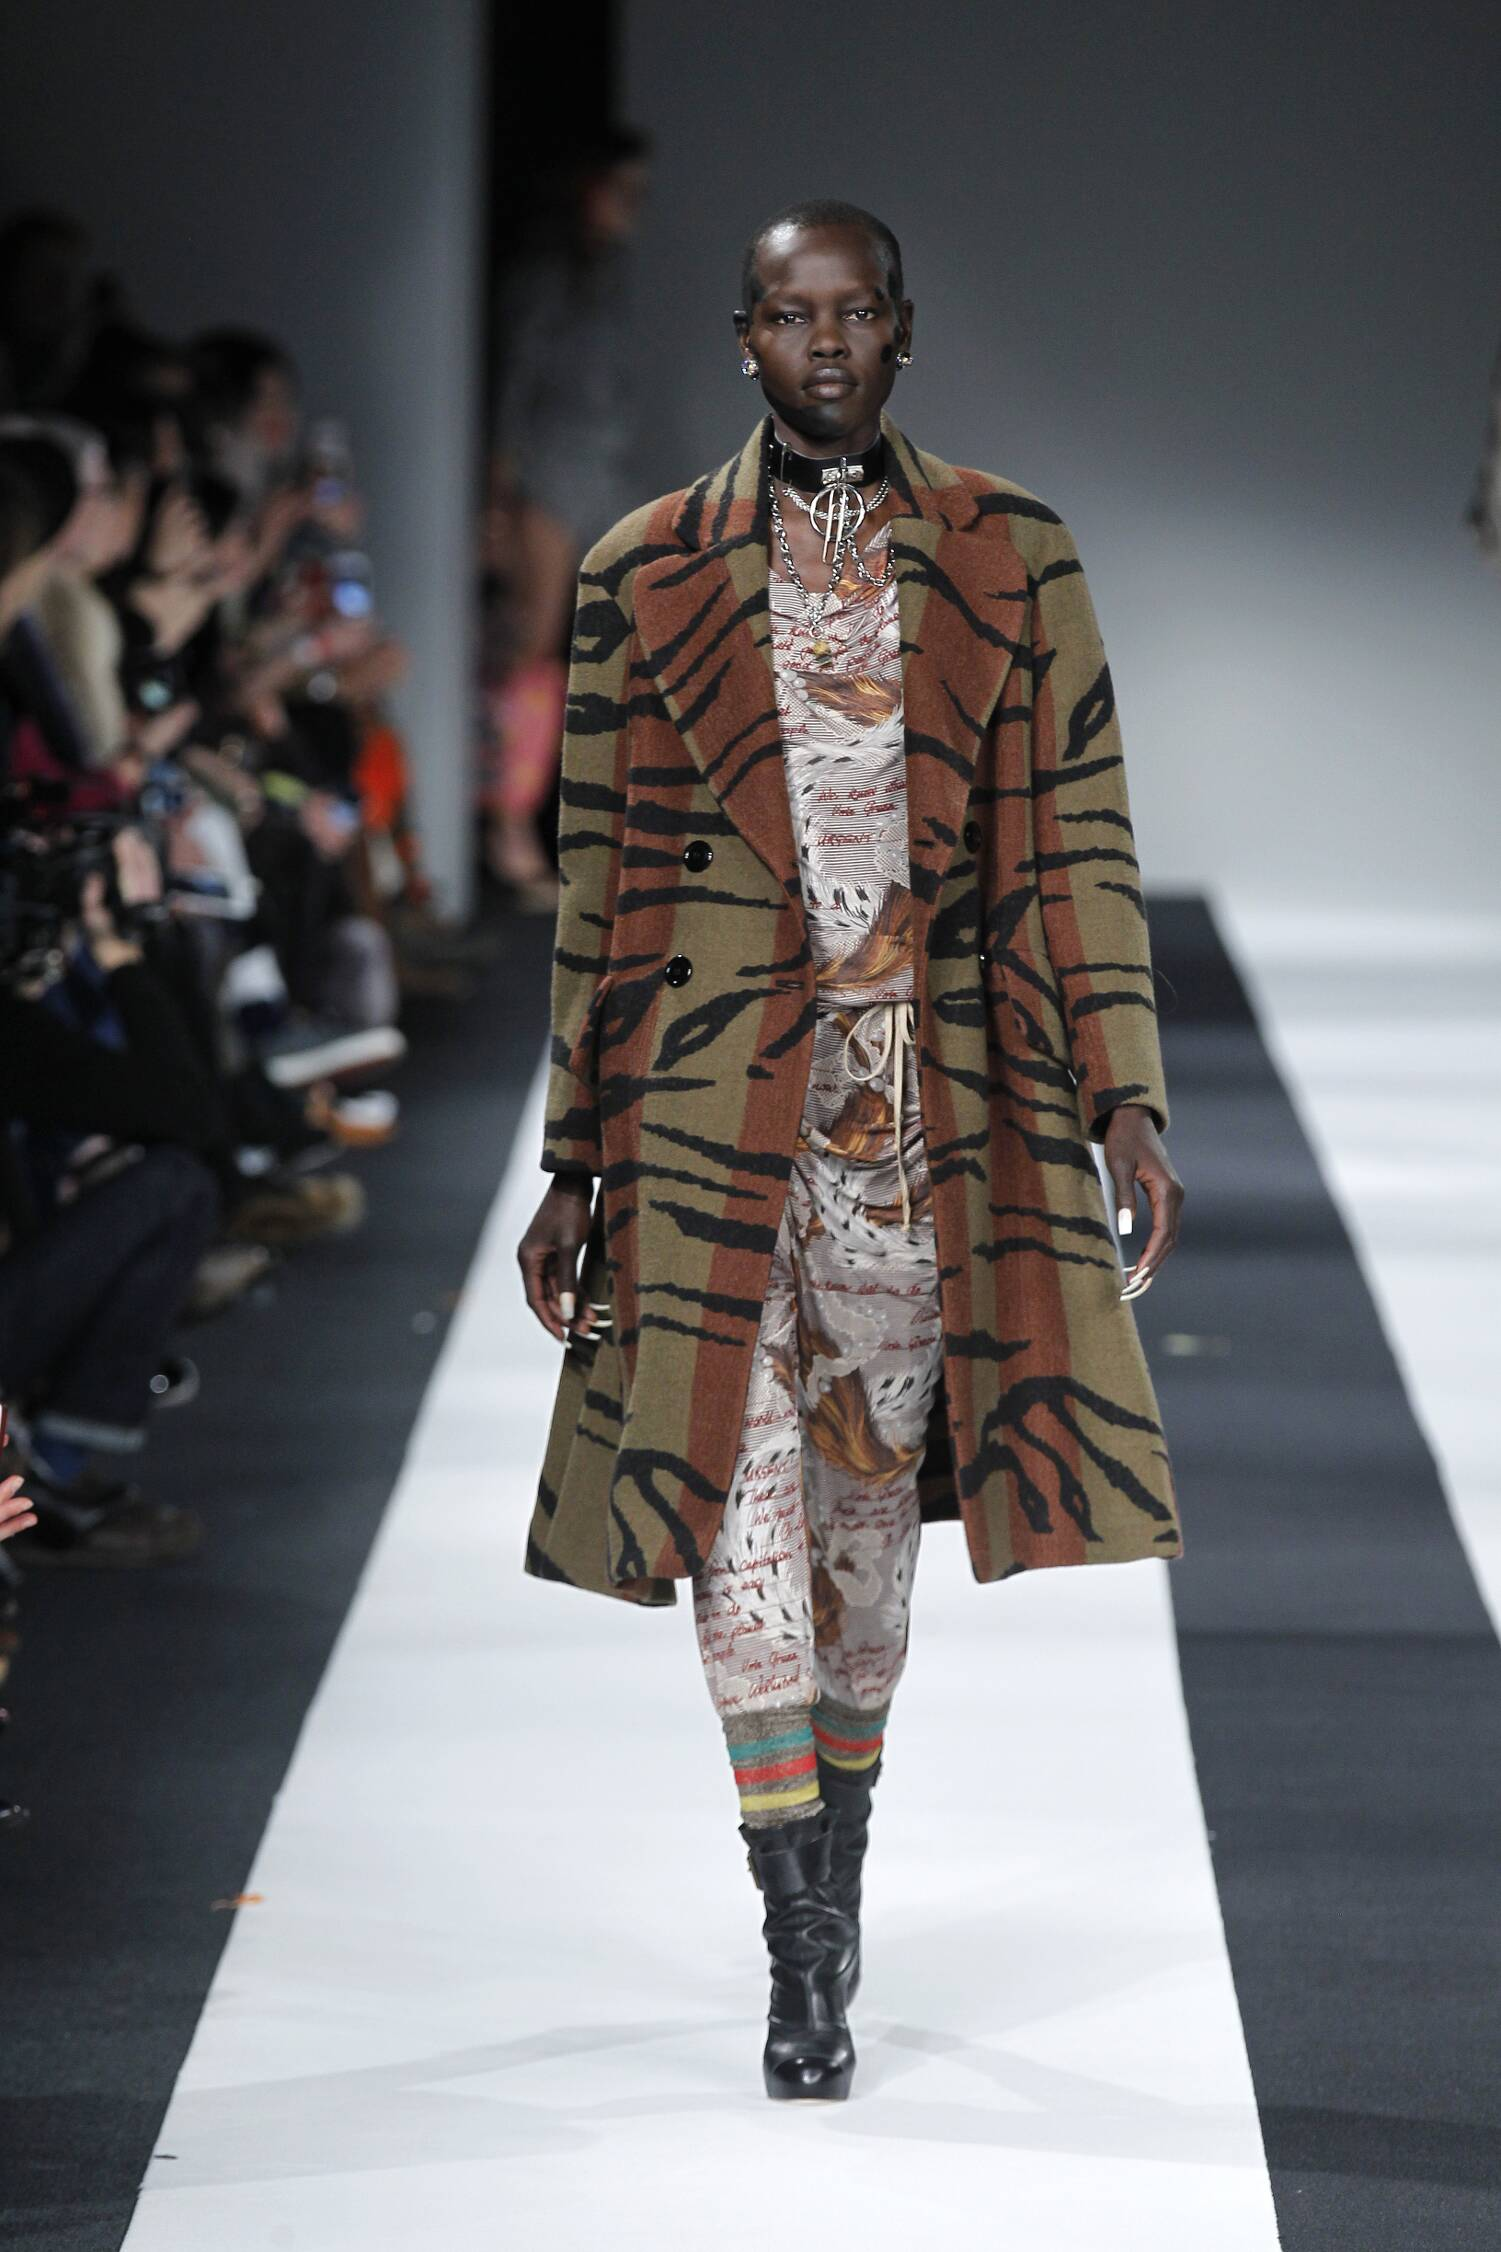 fe4af143d8 VIVIENNE WESTWOOD RED LABEL FALL WINTER 2015-16 WOMEN'S COLLECTION ...